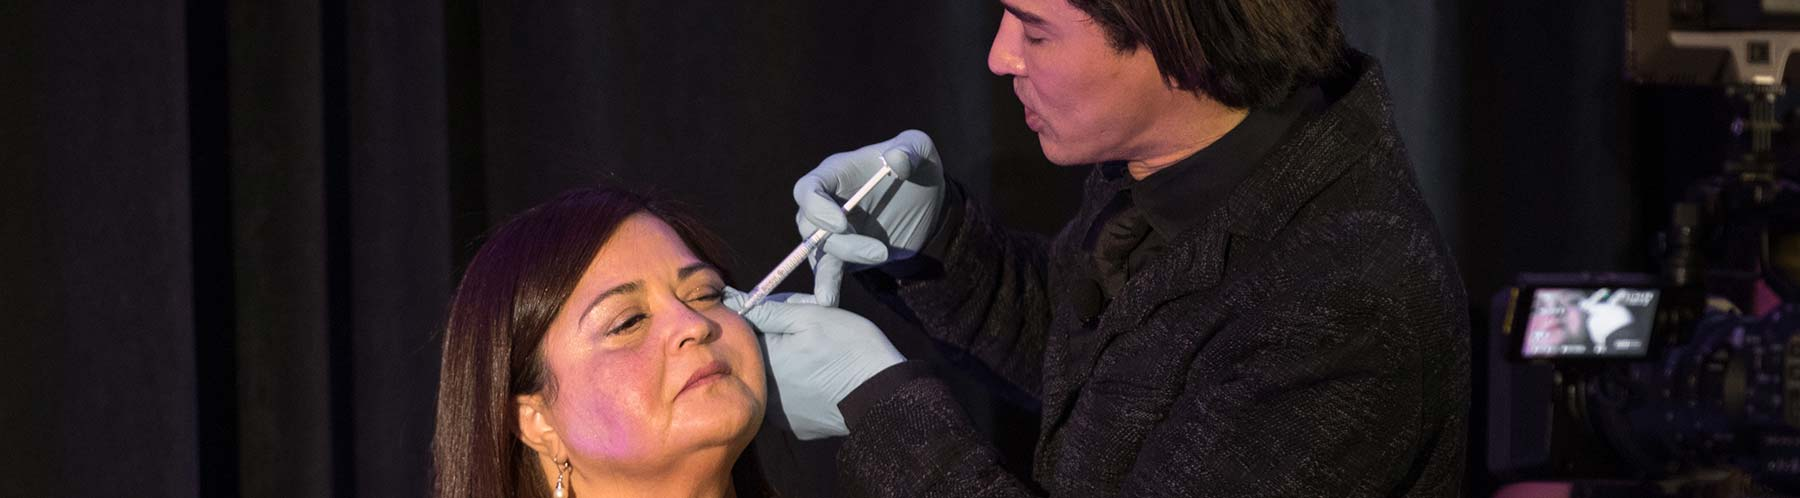 Dr. Shino Bay demonstrating an upper cheek injection using Radiesse